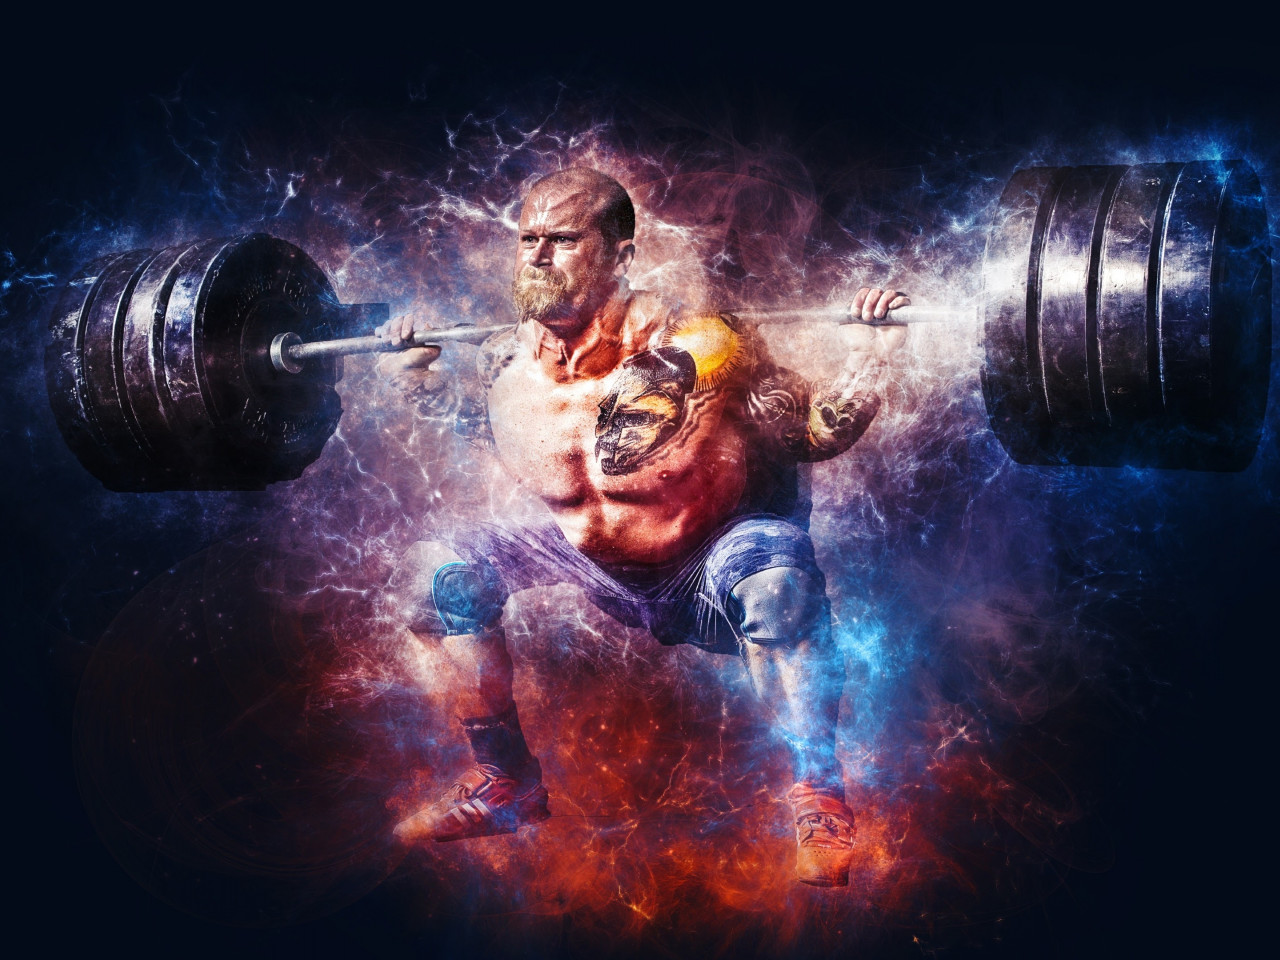 Bodybuilding wallpaper 1280x960